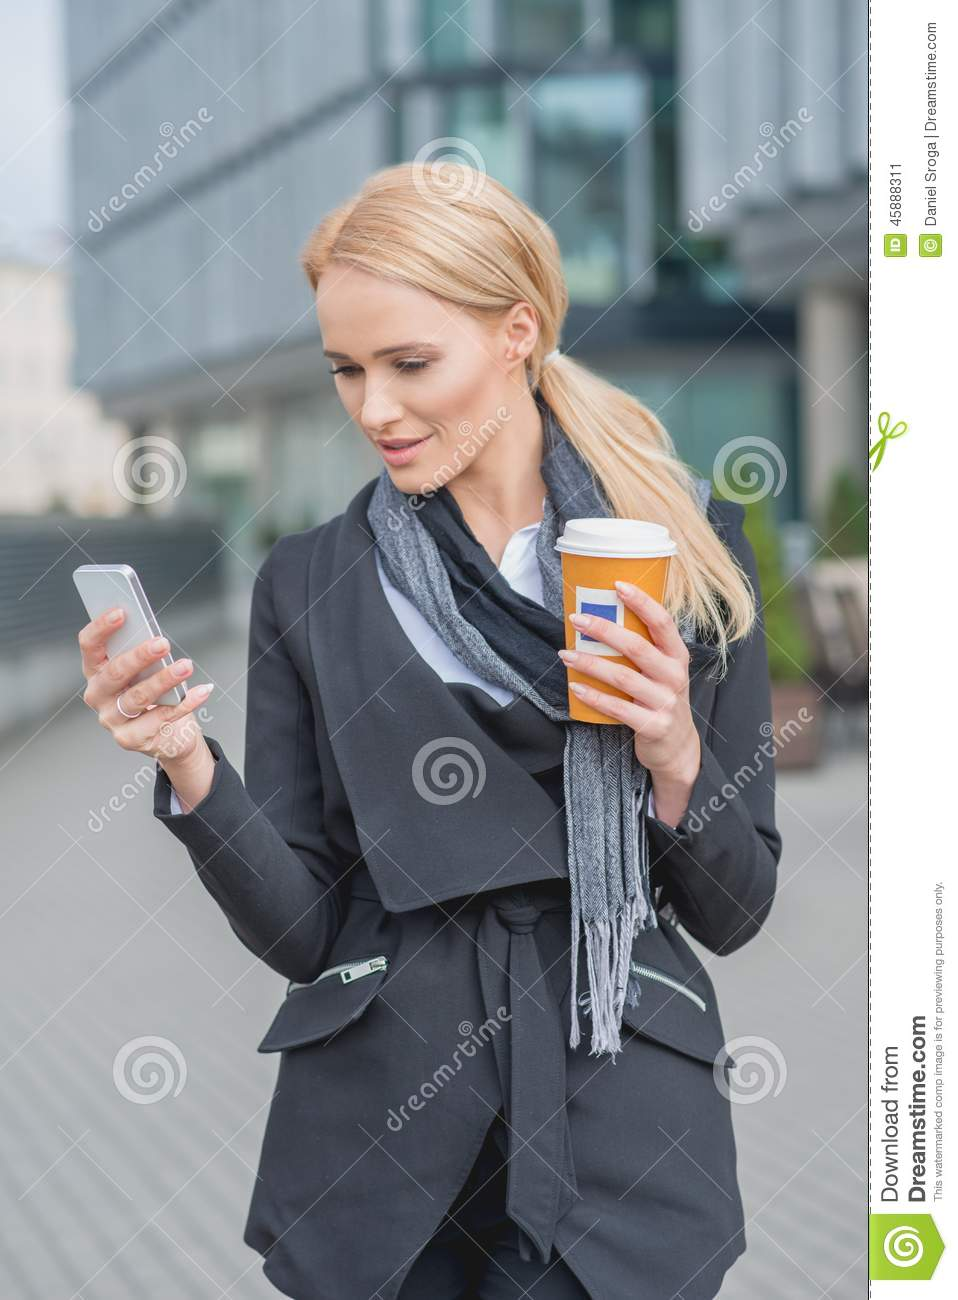 Blonde Girl With Cell Phone Stock Image - Image of sales